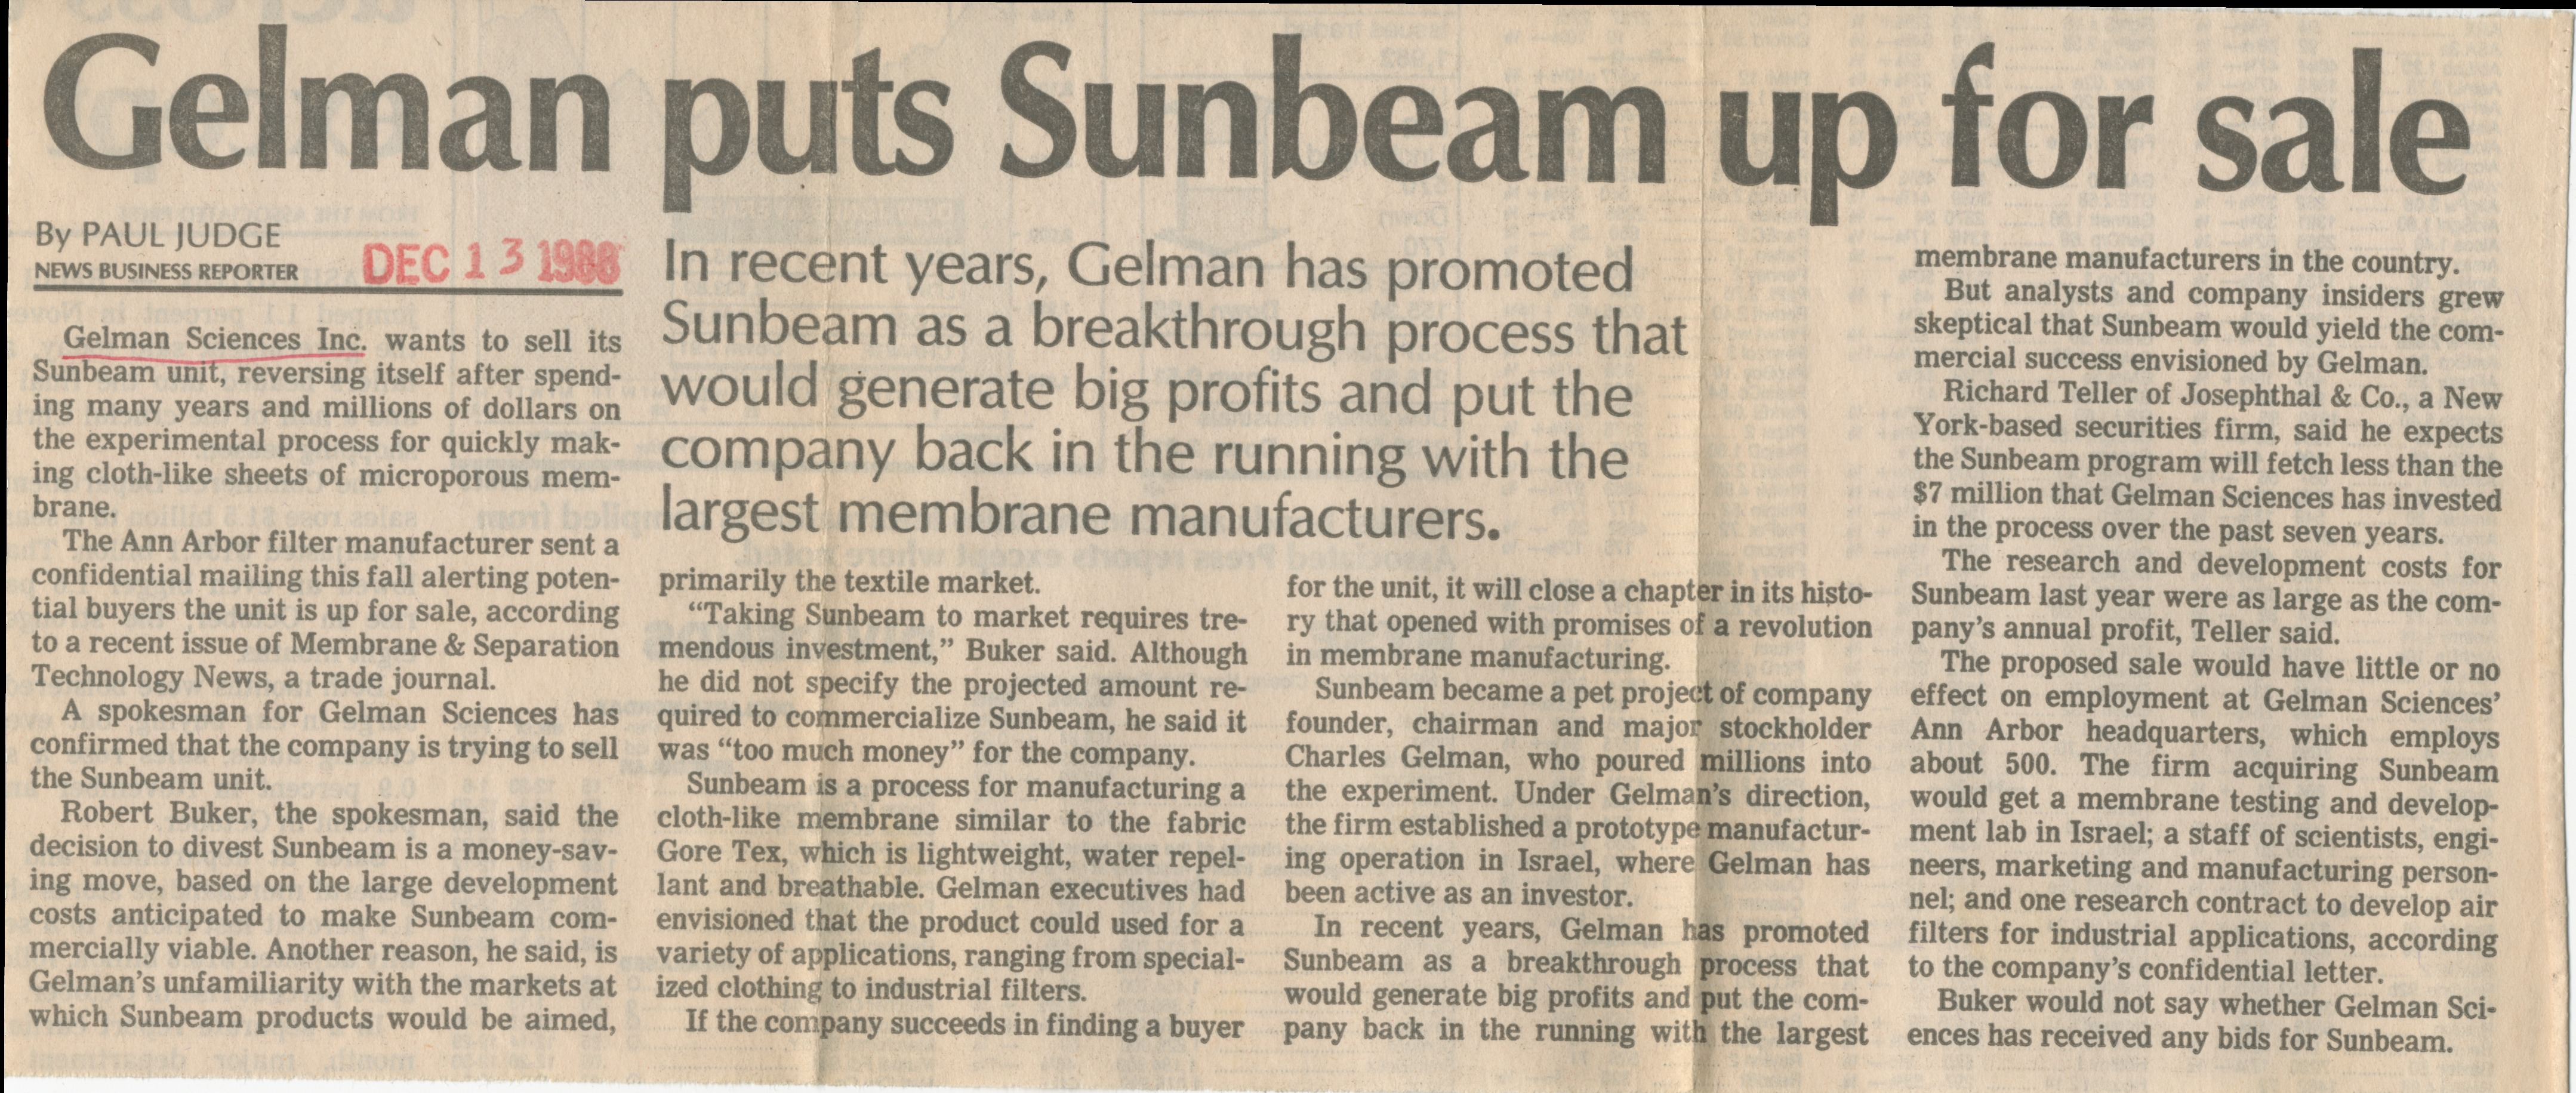 Gelman Puts Sunbeam Up For Sale image